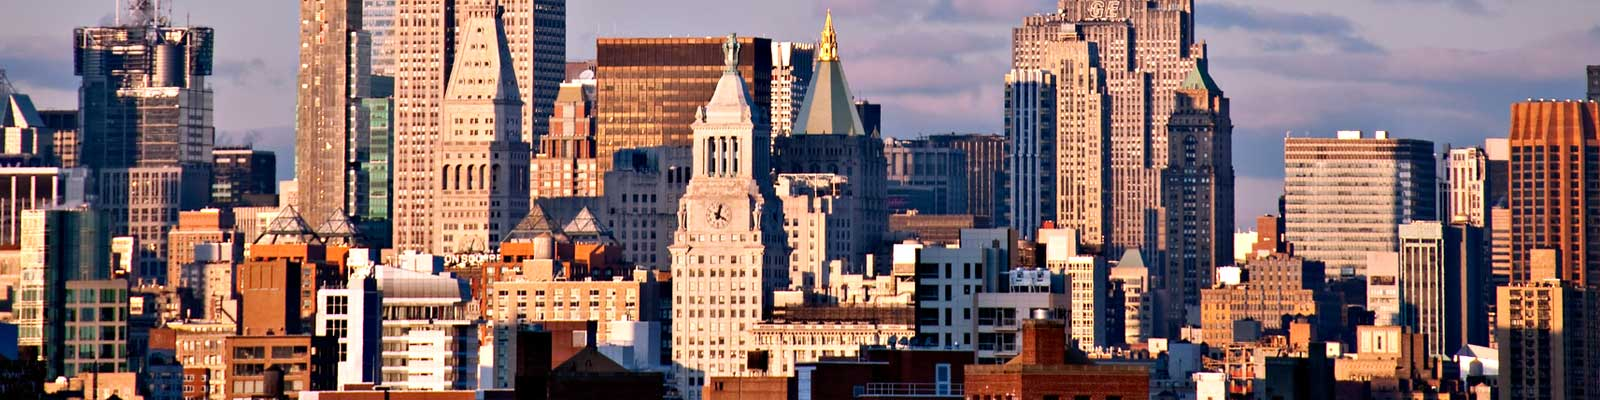 USA Real Estate Investment, Retirement, Vacation, Residential and Commerical Properties - New York